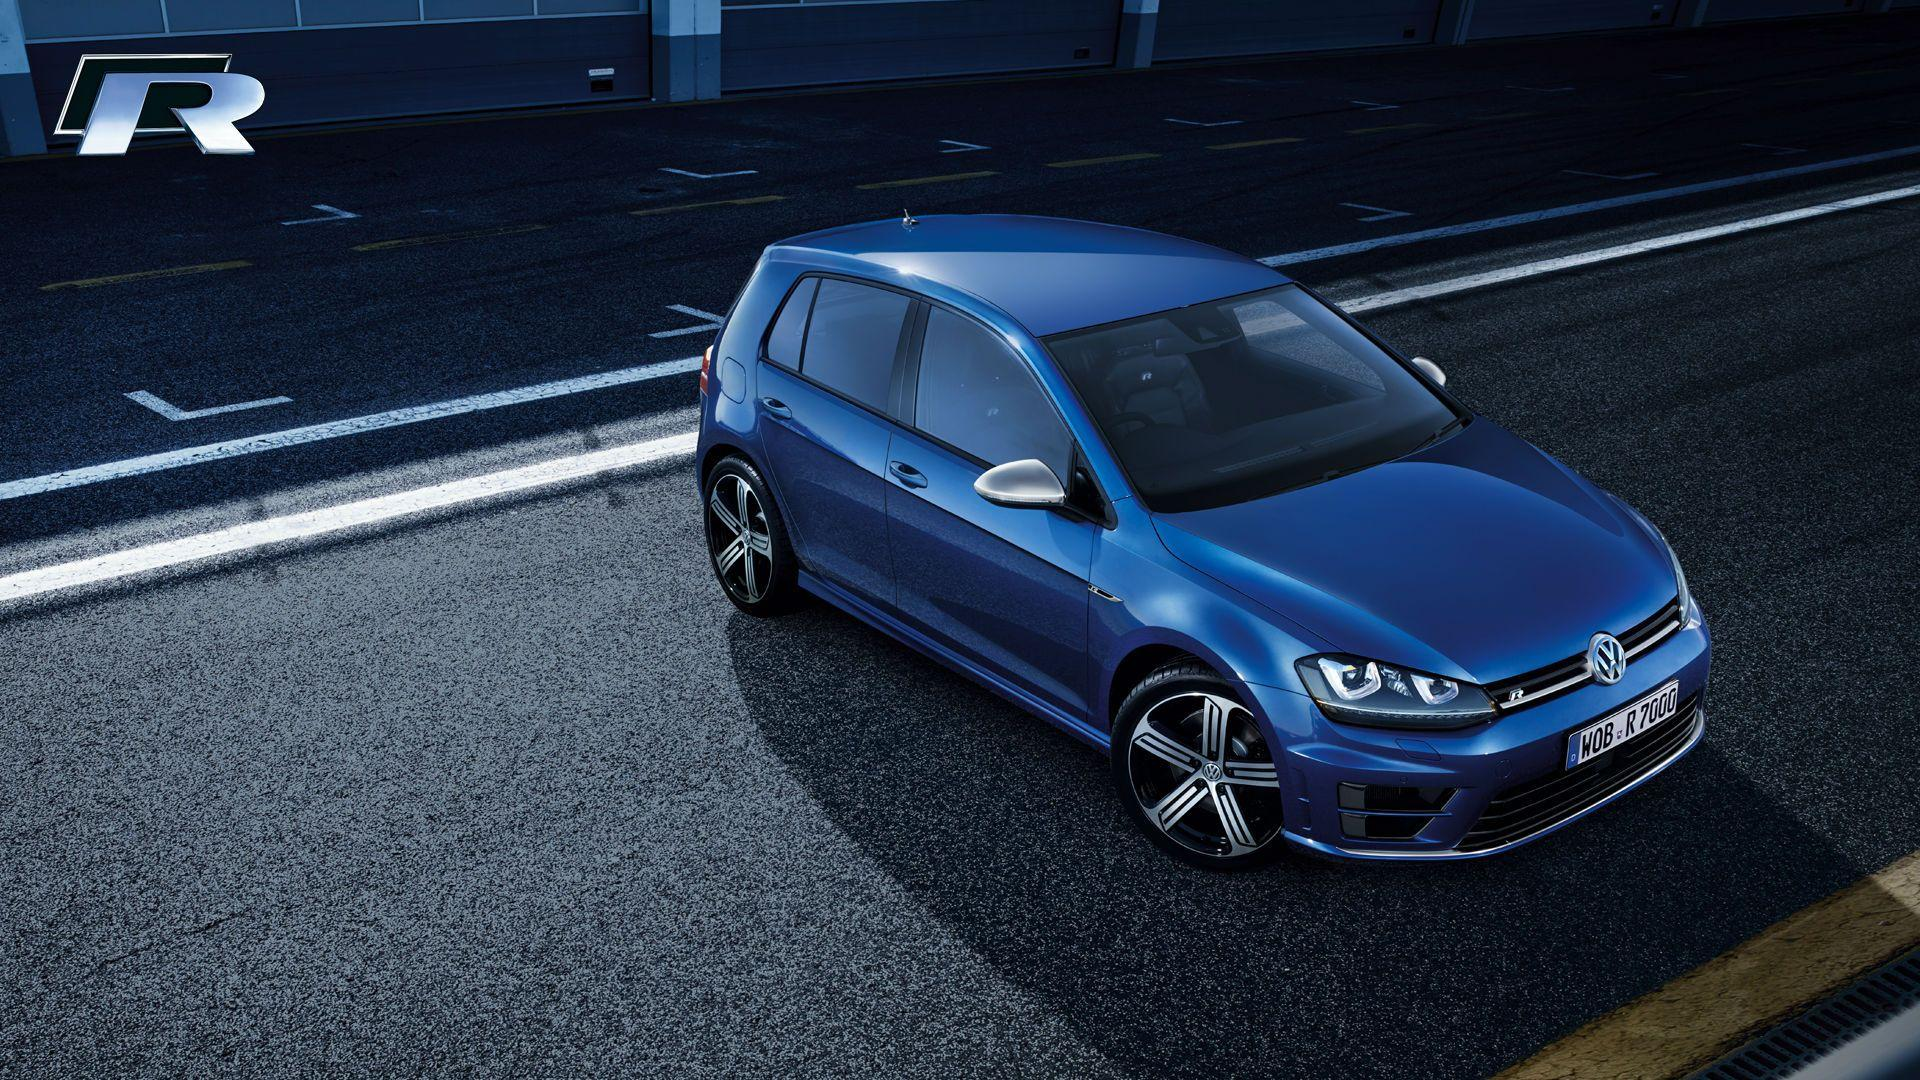 VW Golf R Wallpaper - WallpaperSafari